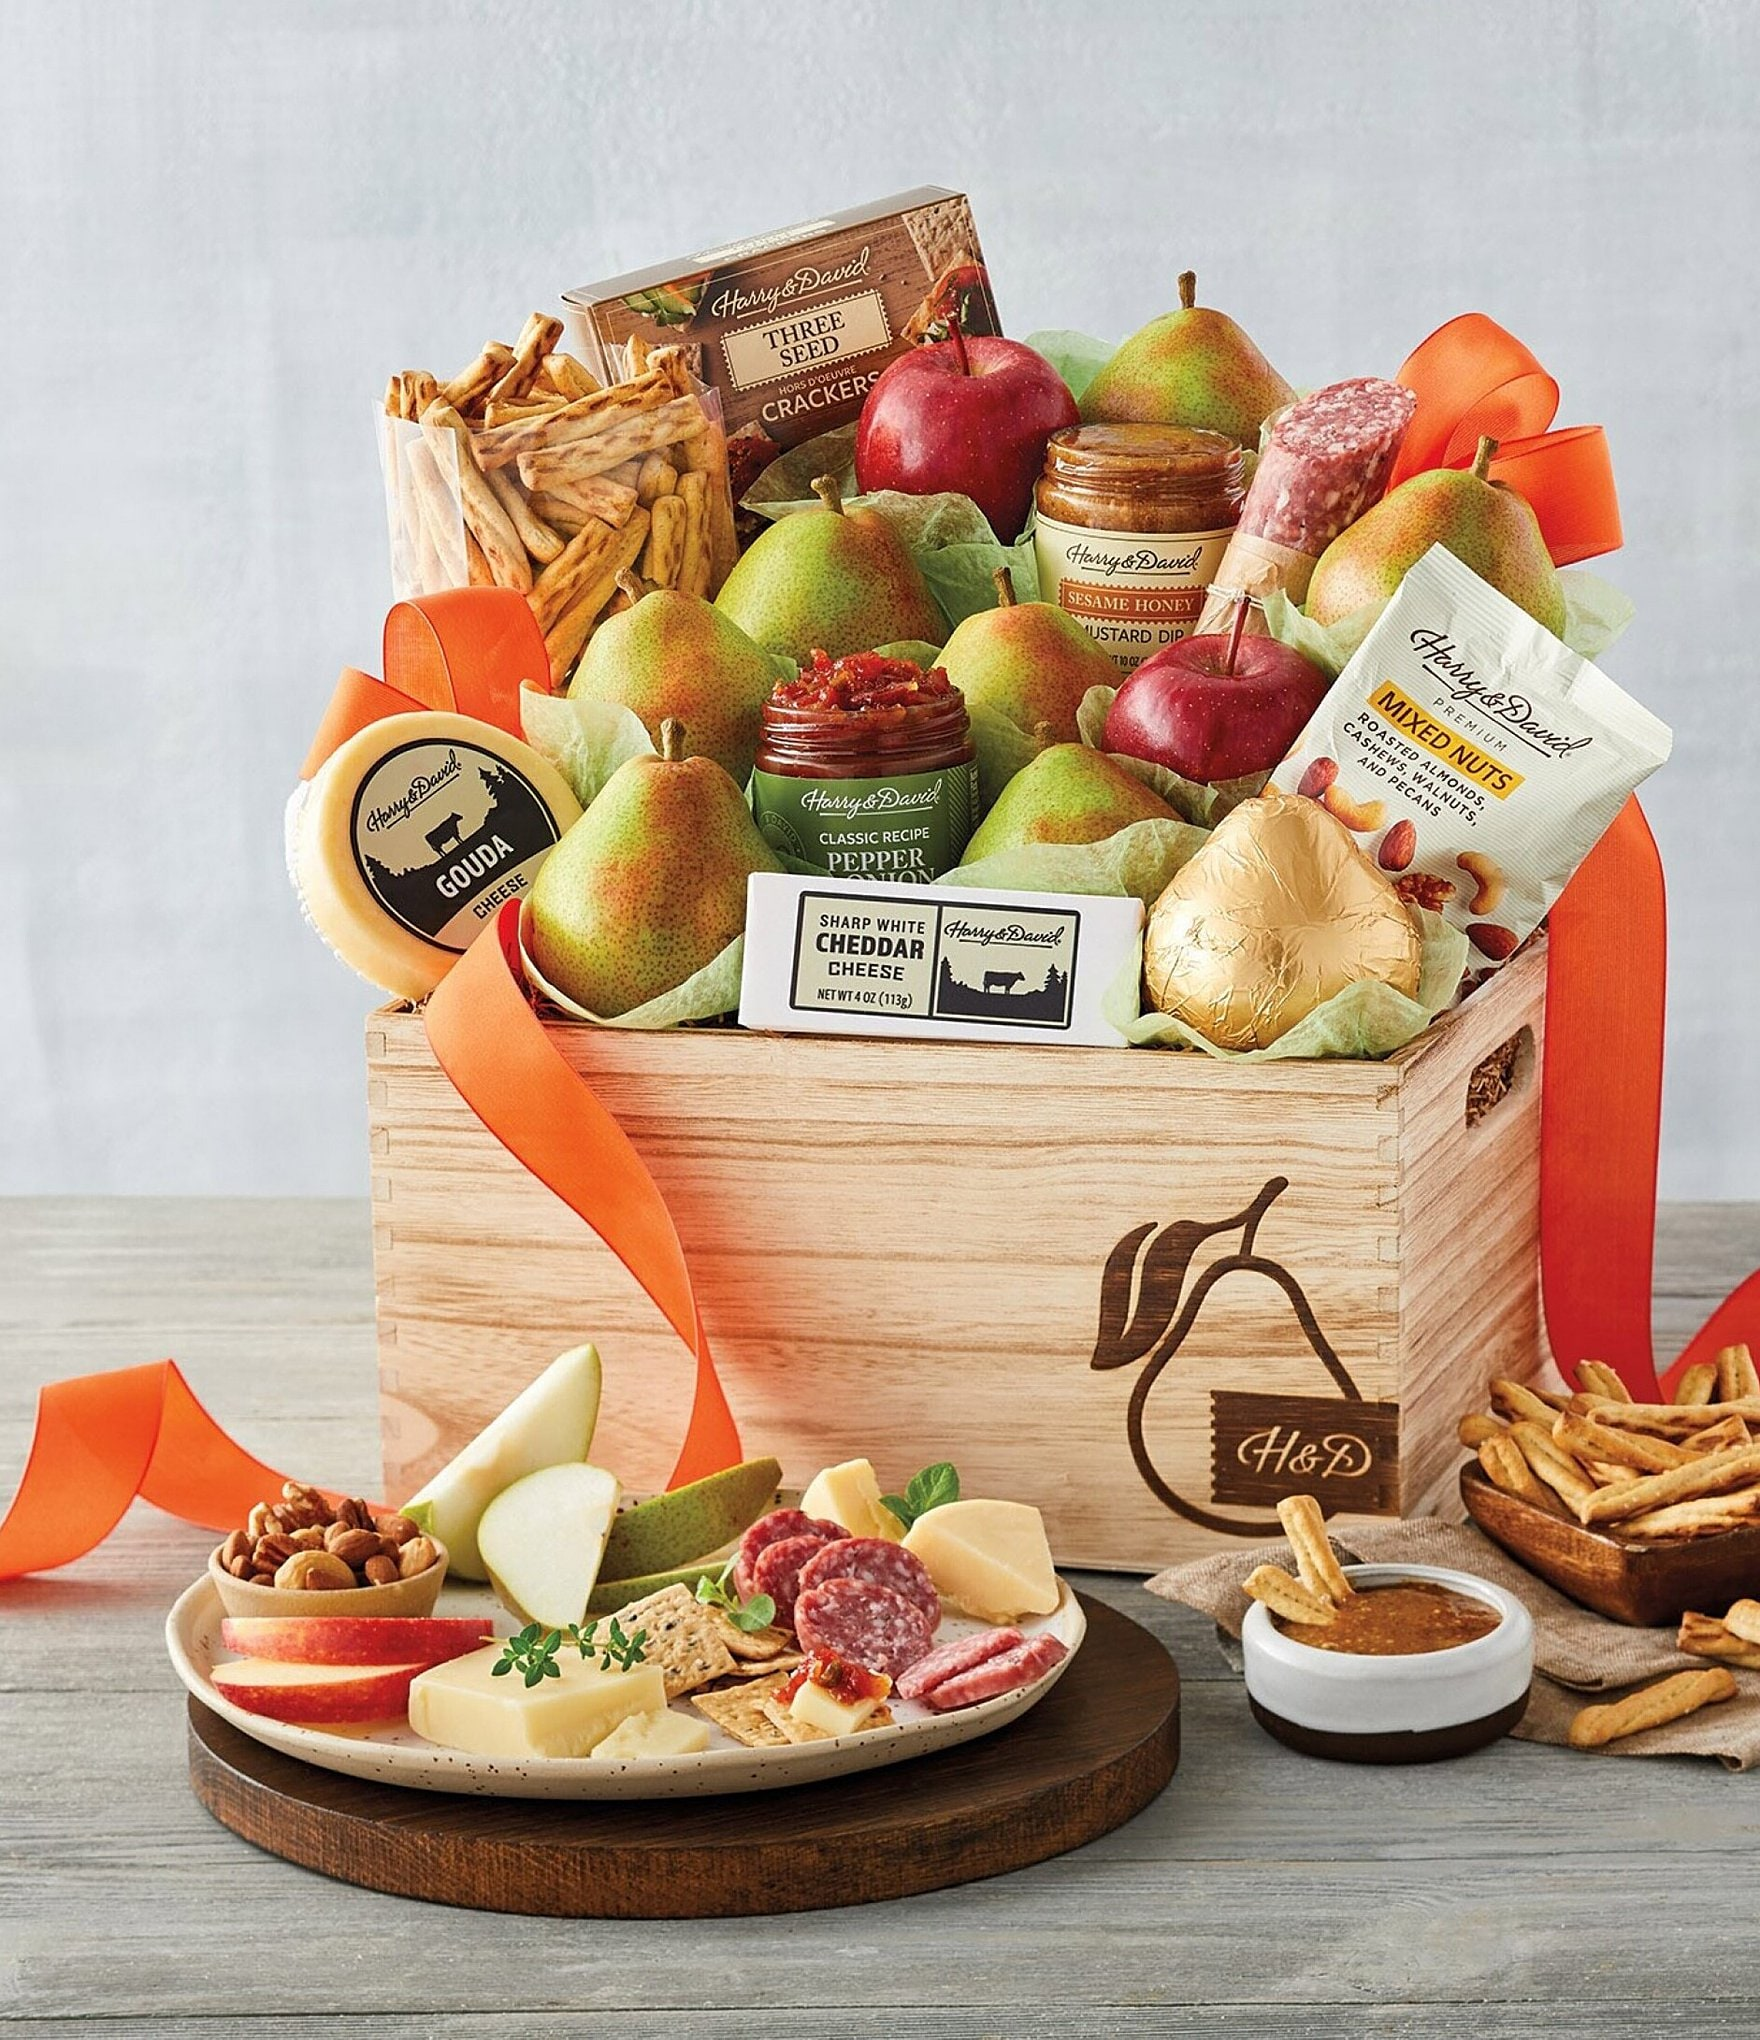 David Grand Signature Gift Basket